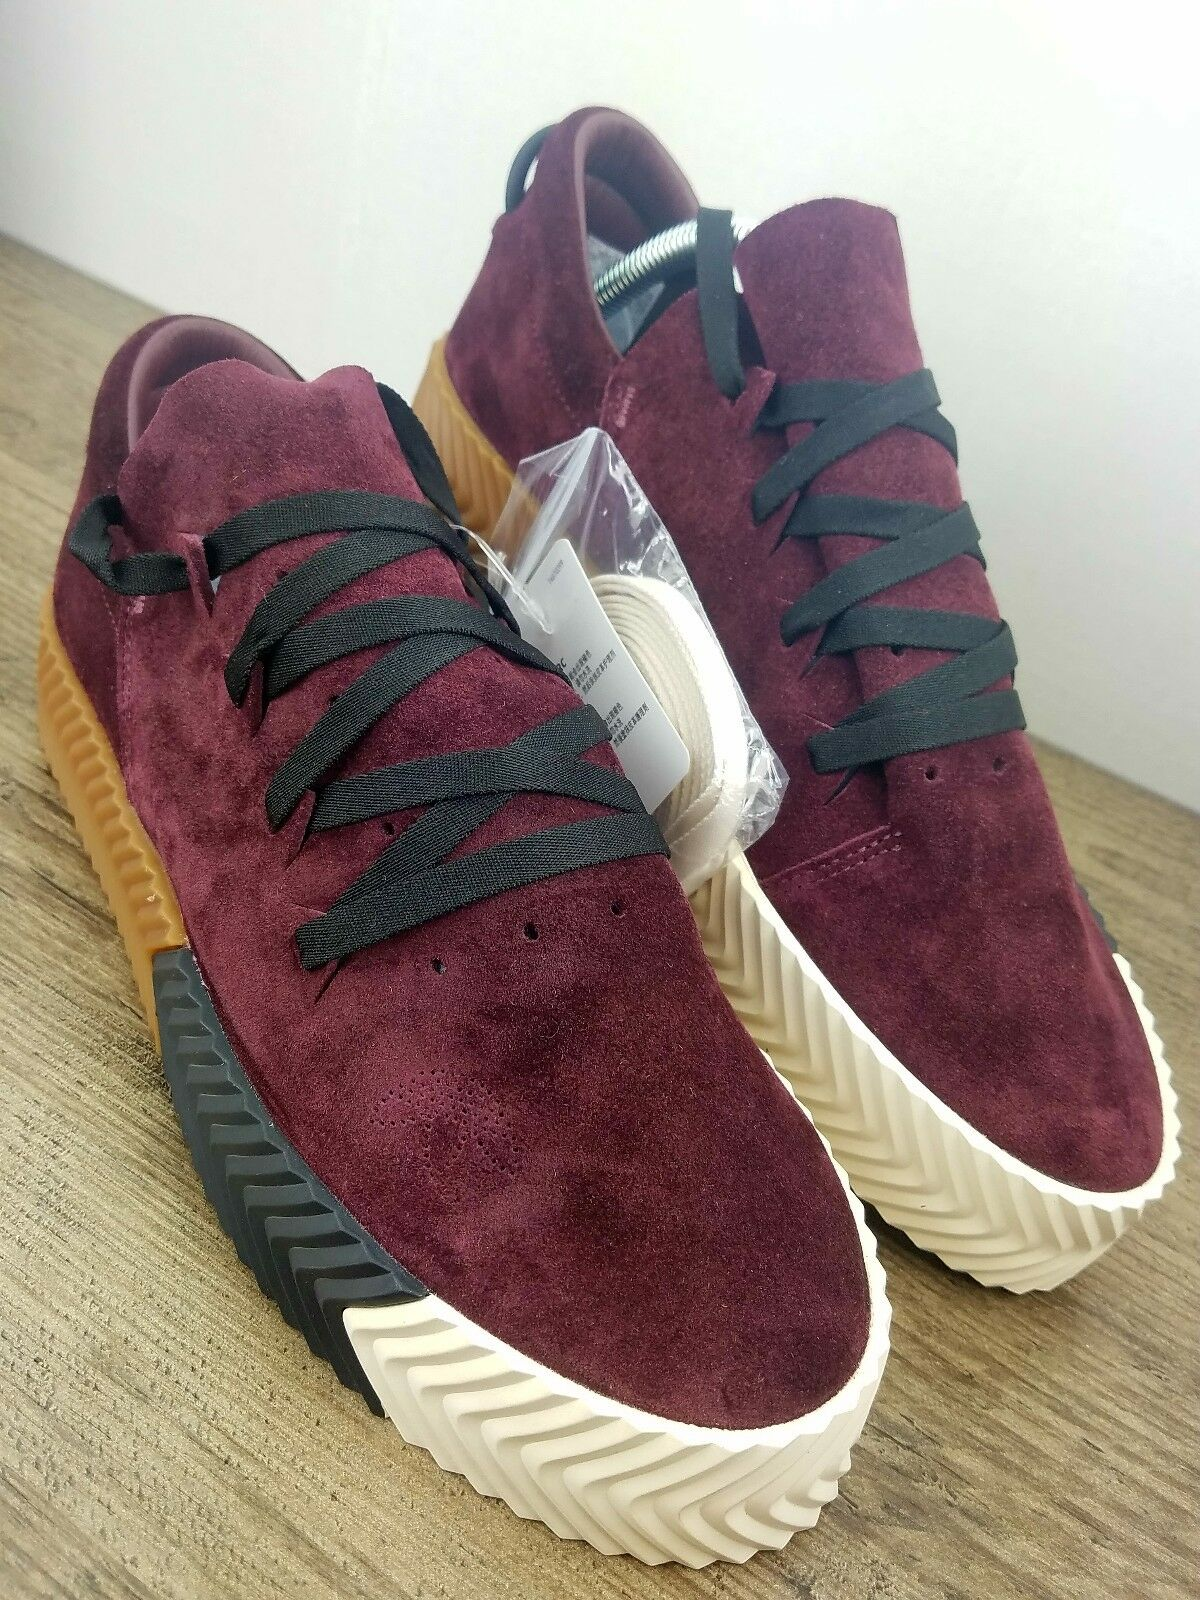 ... ADIDAS Originals ALEXANDER WANG X AW Skate Maroon Gum BY8909 US Sz 5 -  UK 4.5 ... 072be573f